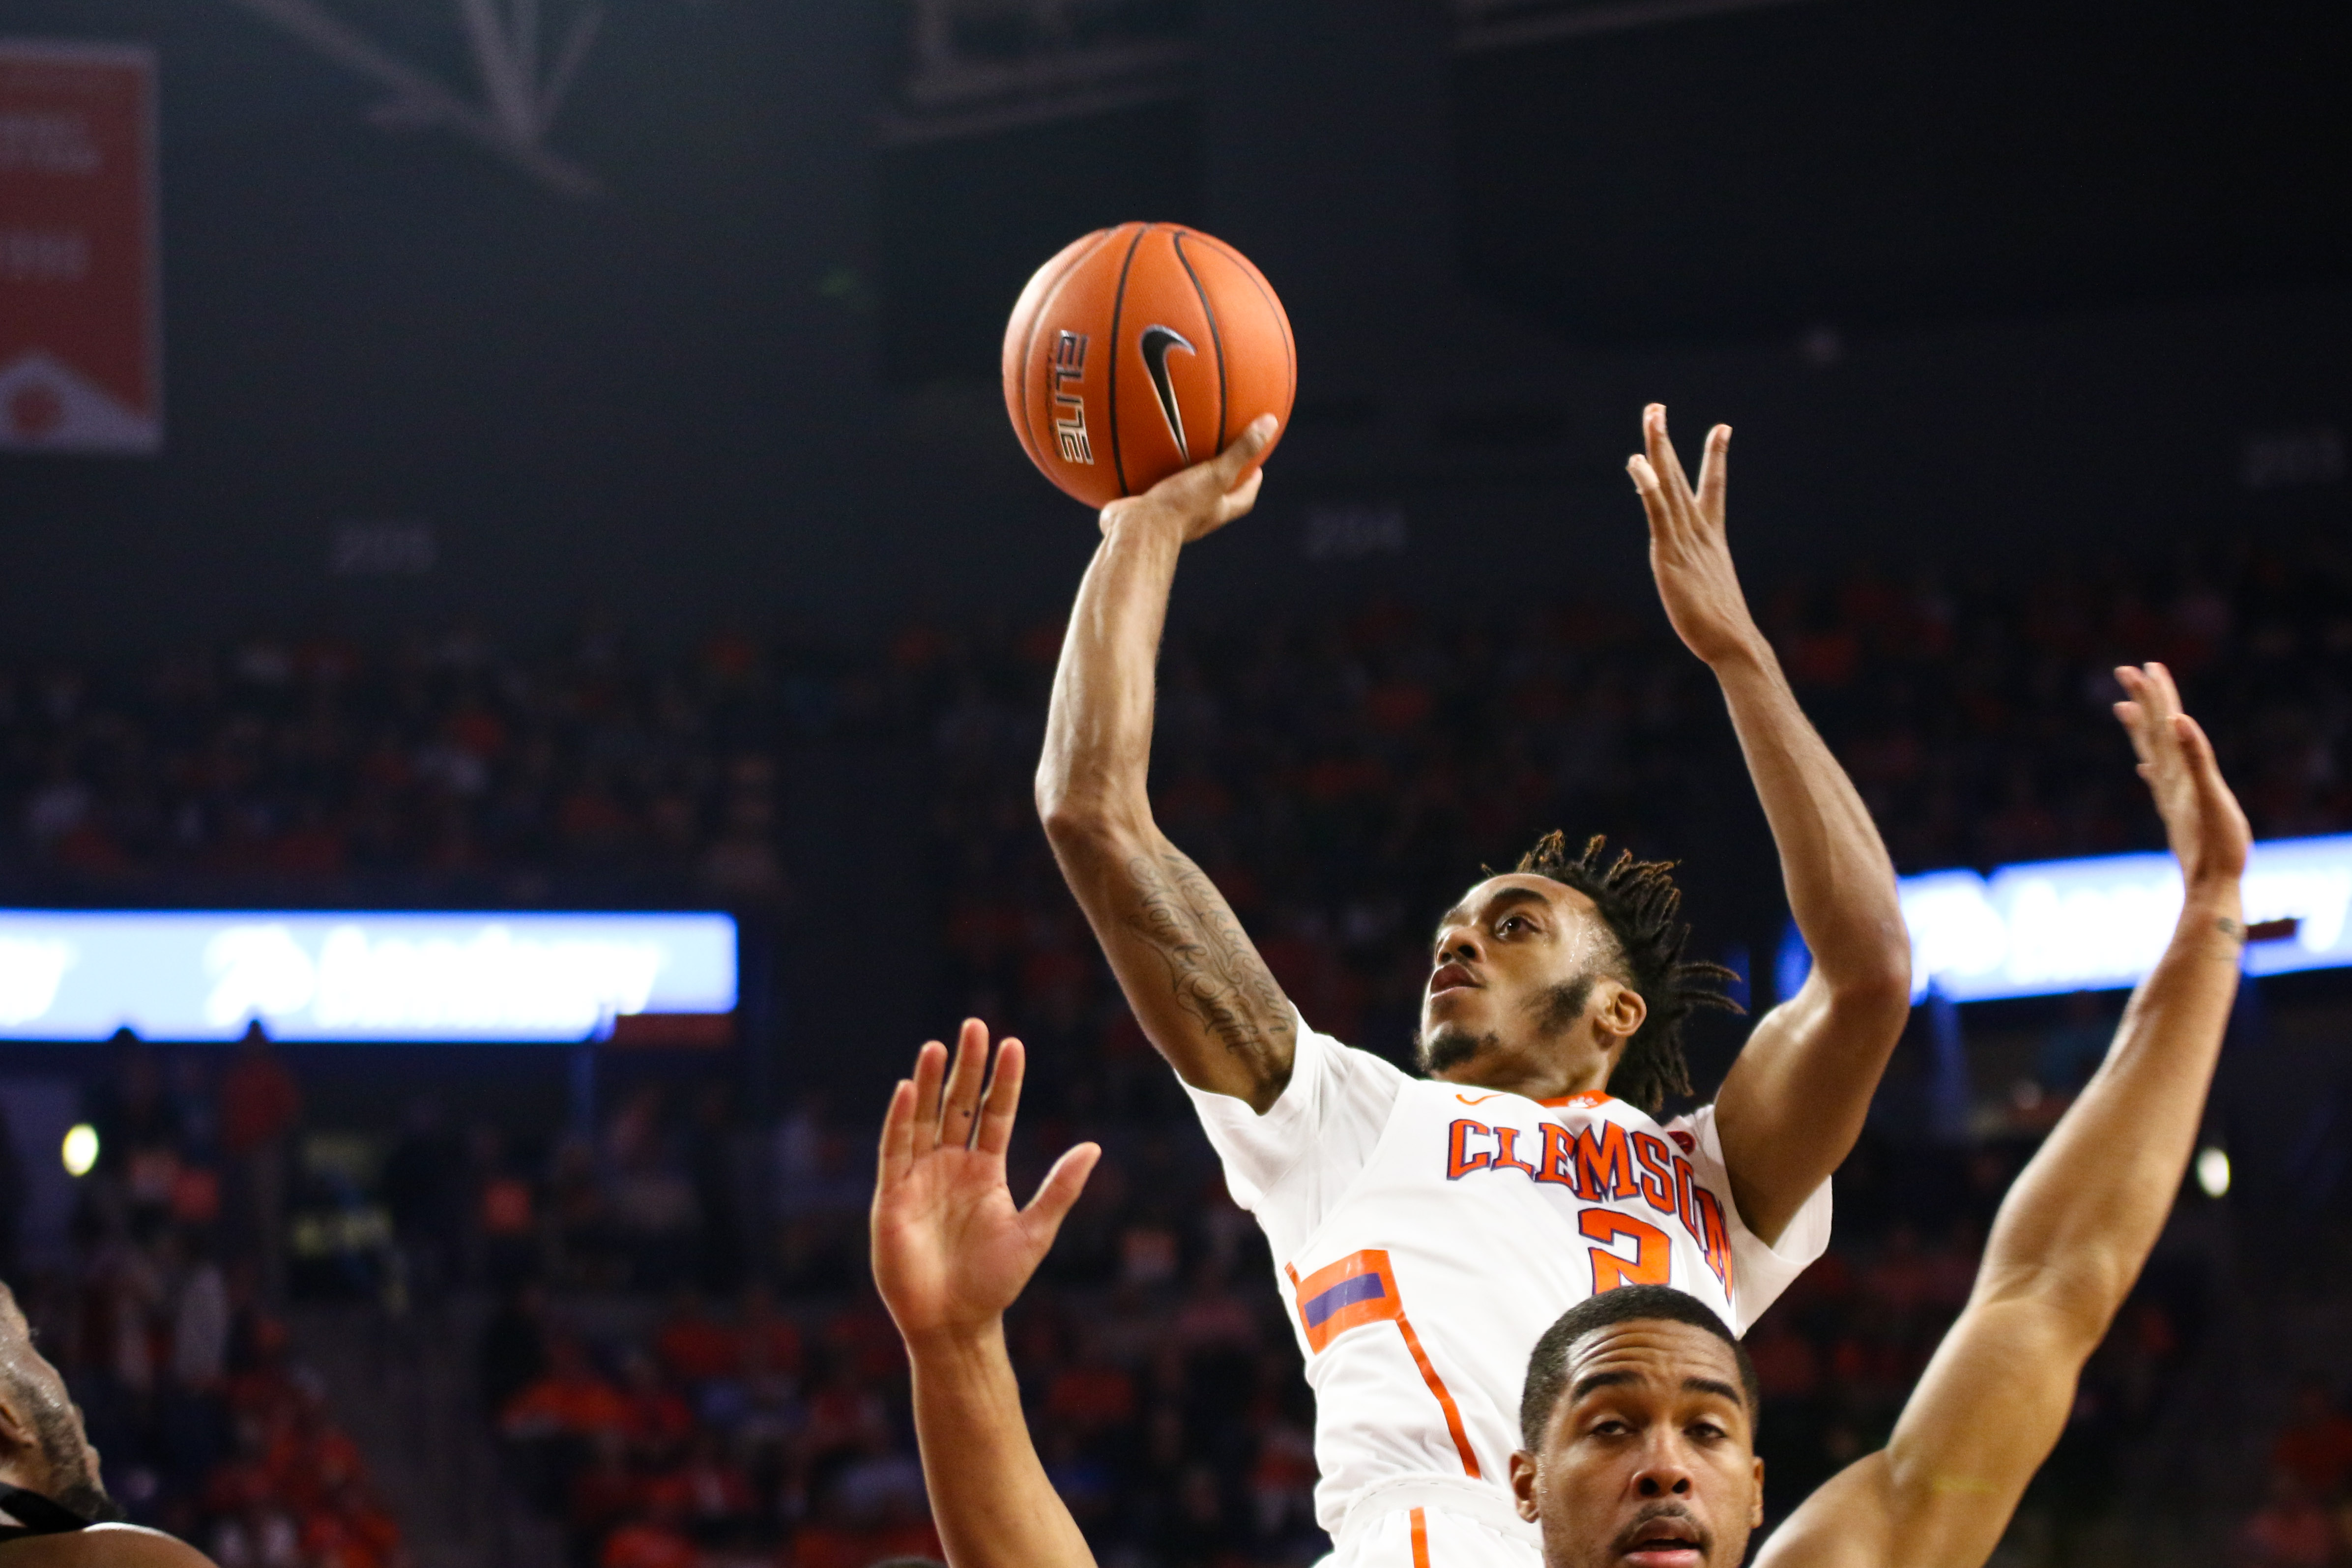 Clemson basketball shot